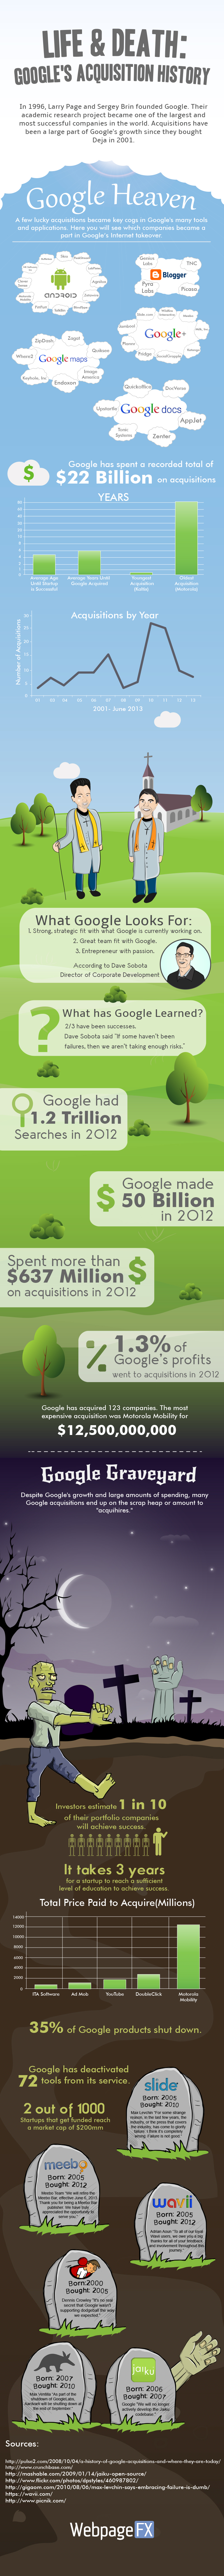 google-acquisitions-infographic